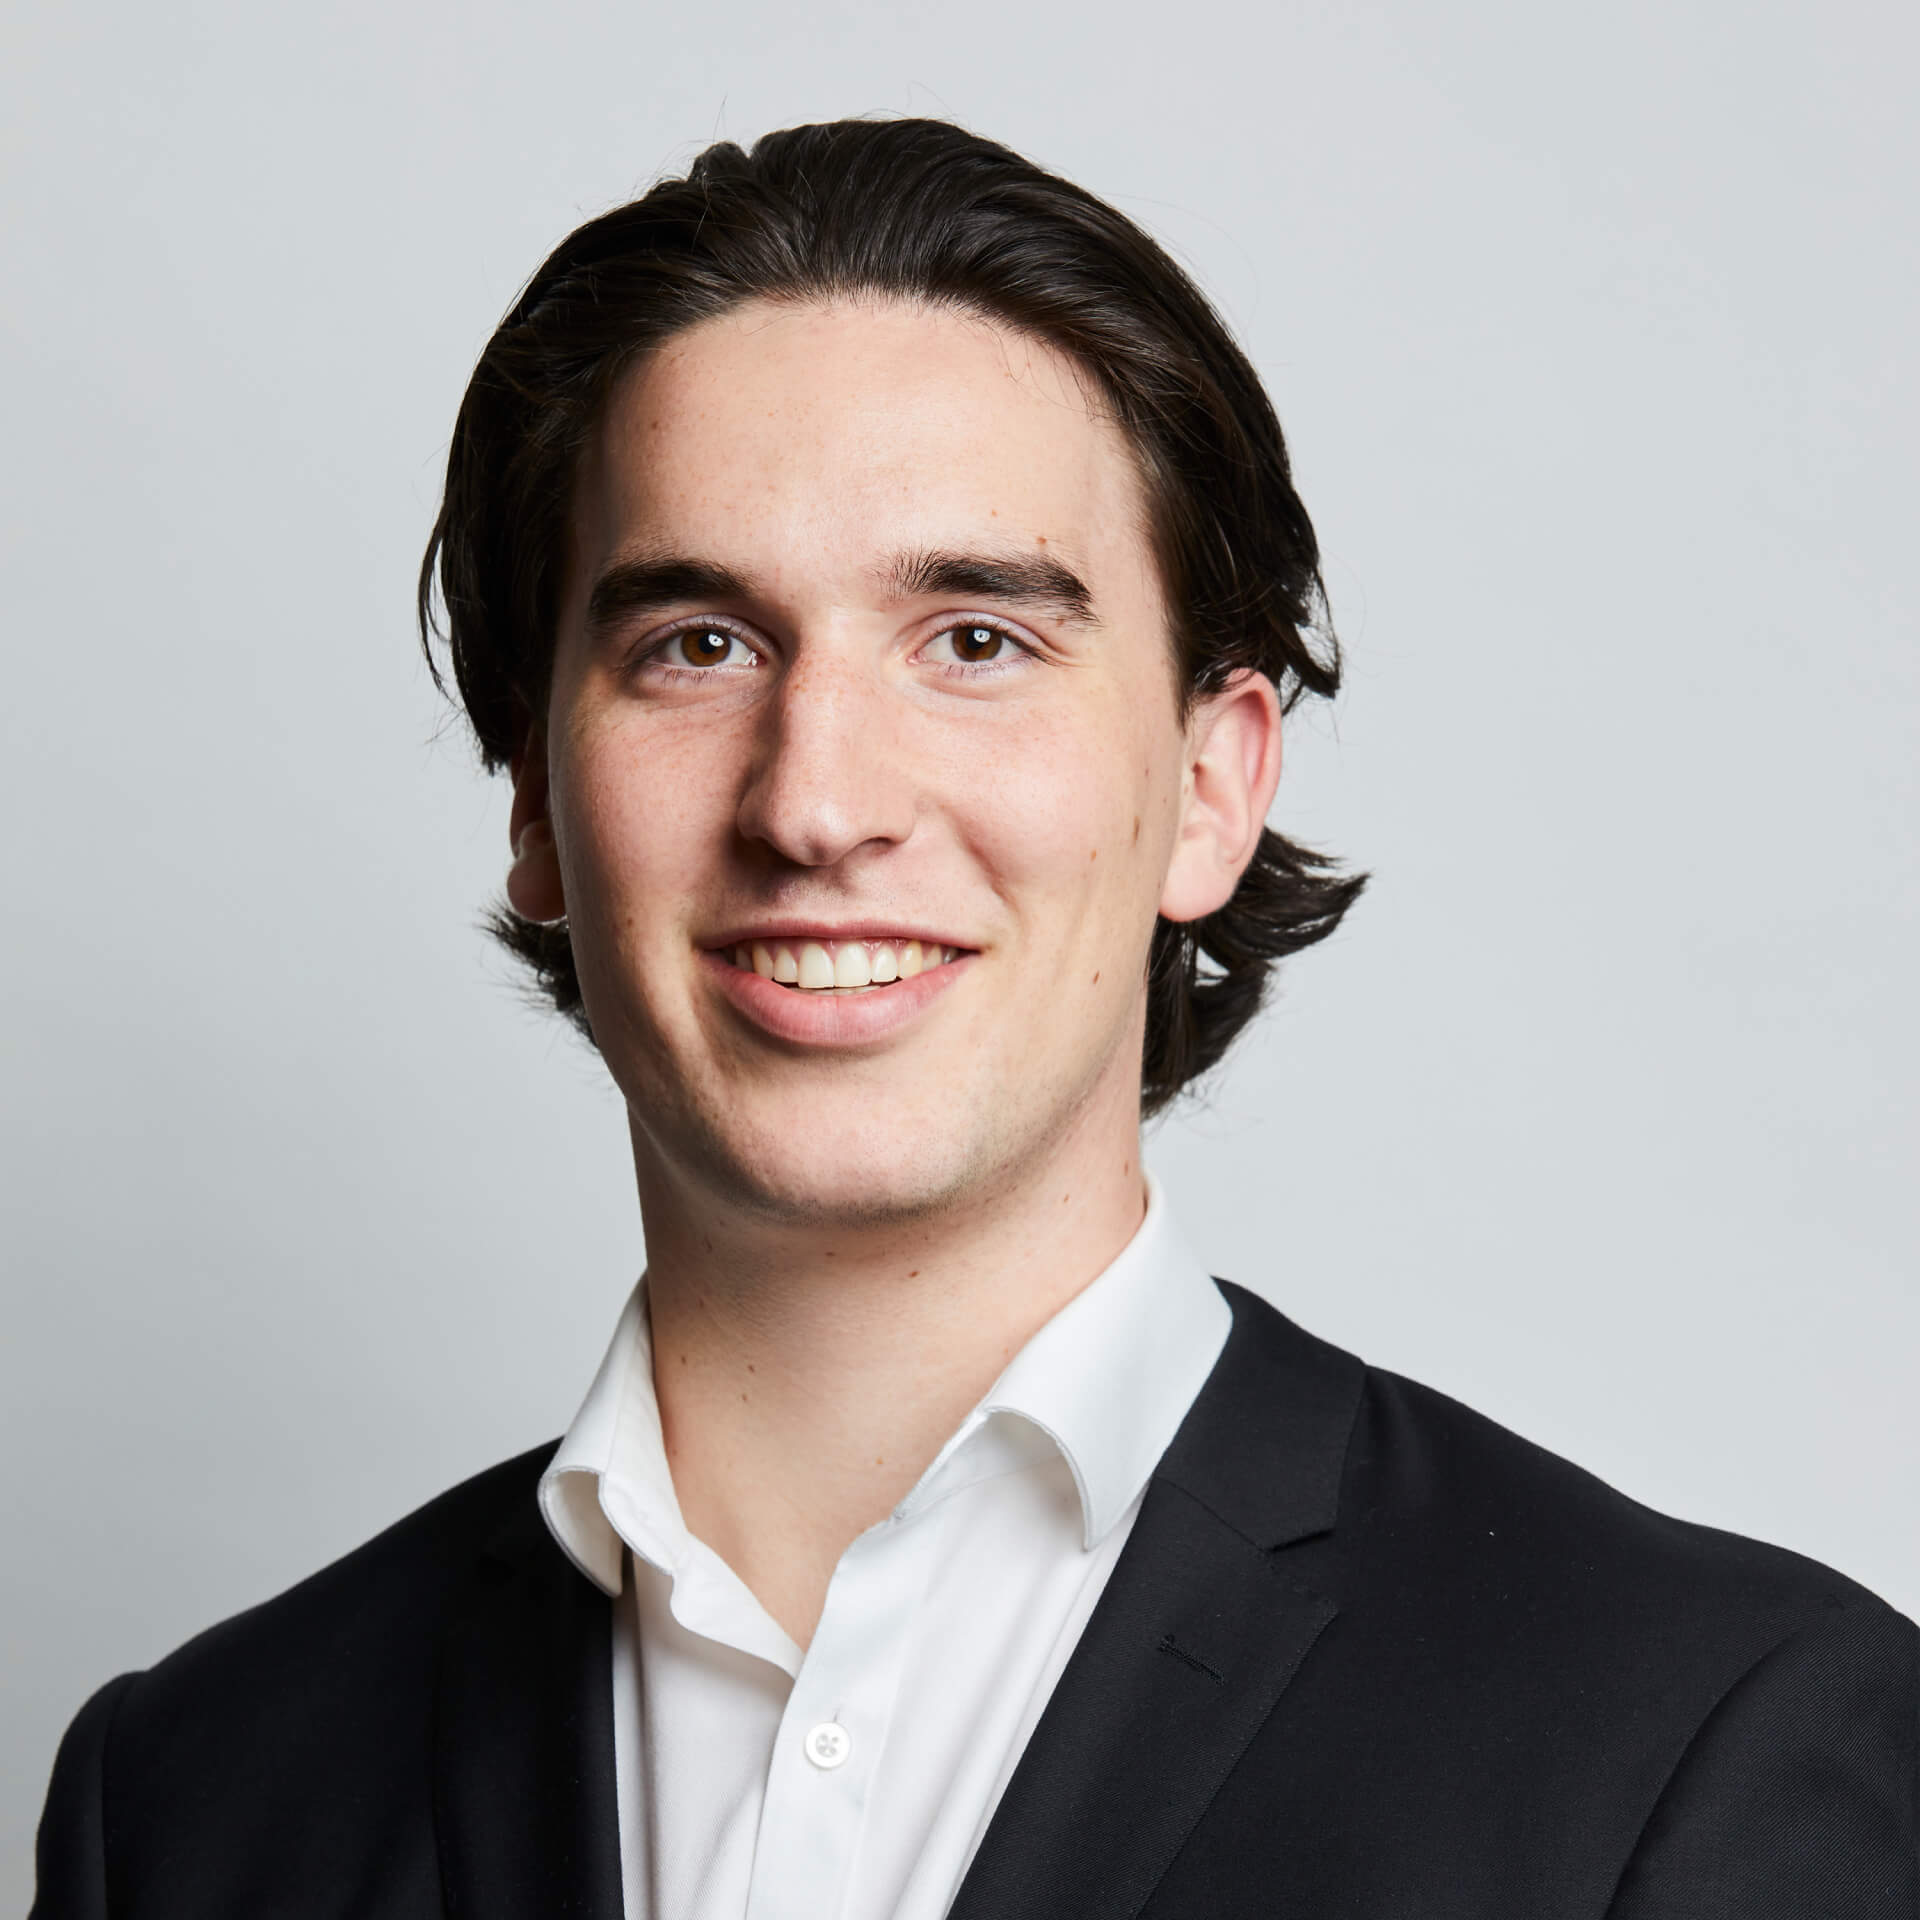 Sam Boyle - Account Manager at Caleb and Brown